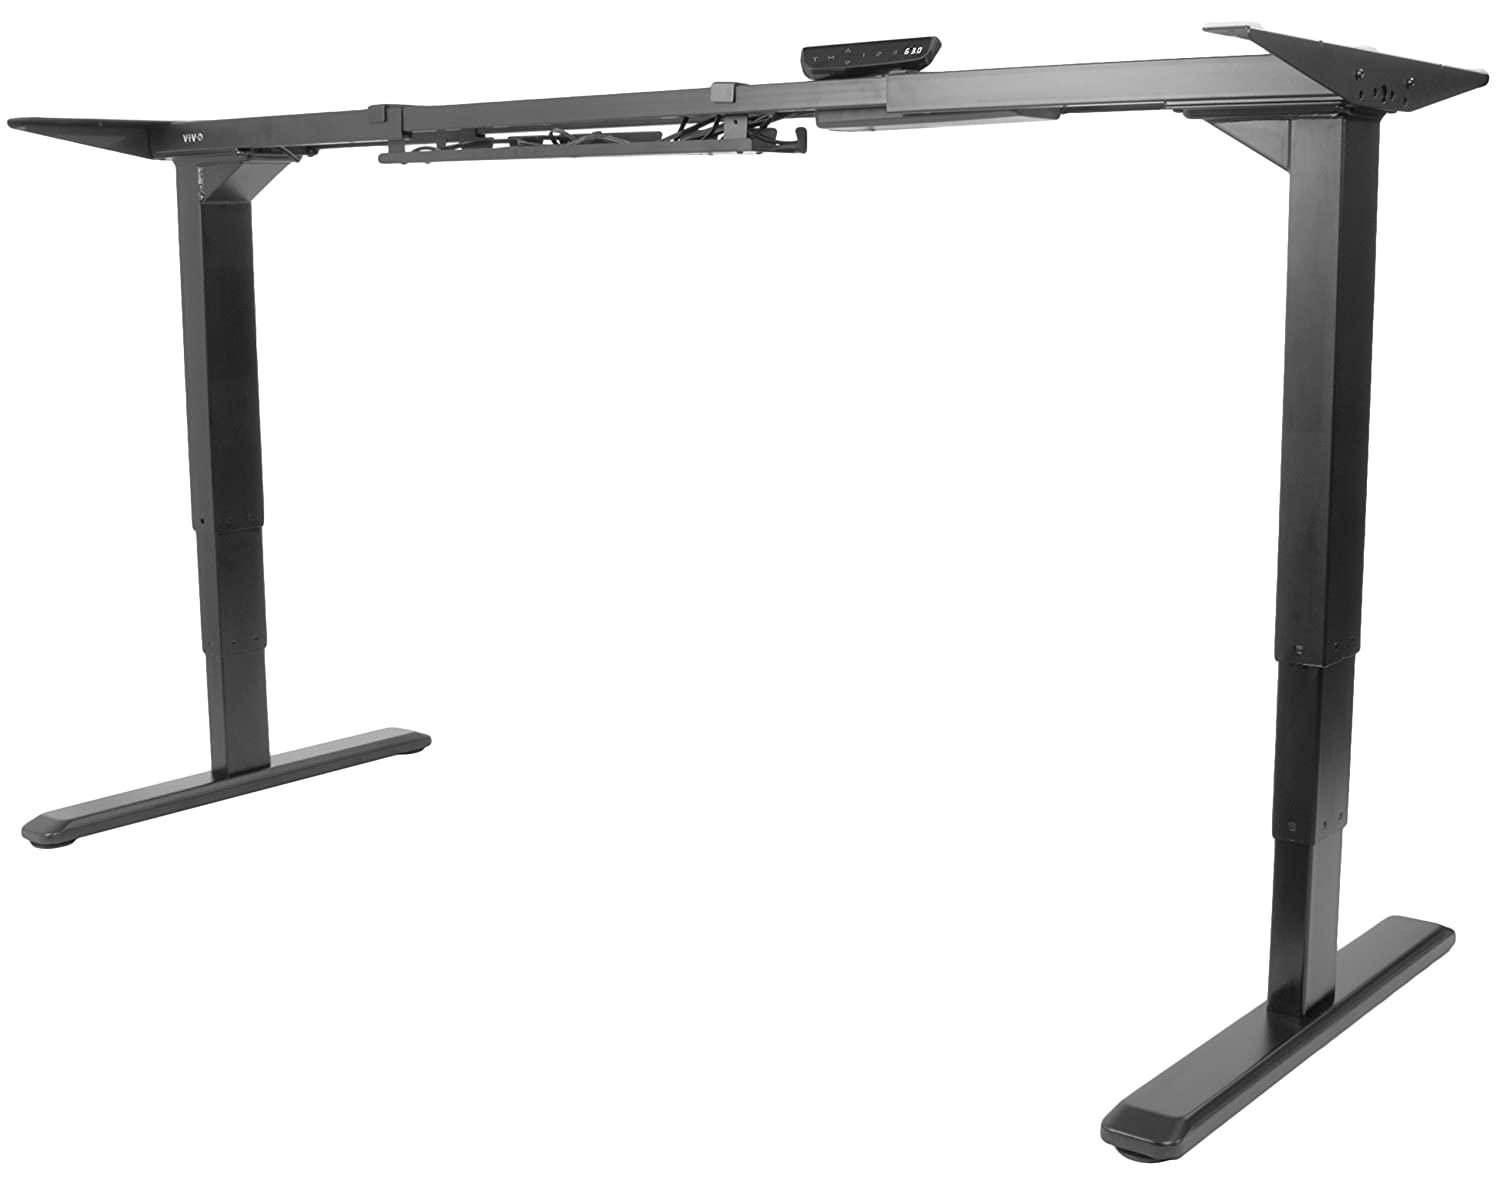 Brilliant Vivo Black Electric Dual Motor Stand Up Desk Frame With Cable Management Rack Ergonomic Height Adjustable Standing Diy Workstation Desk V103E Home Remodeling Inspirations Propsscottssportslandcom